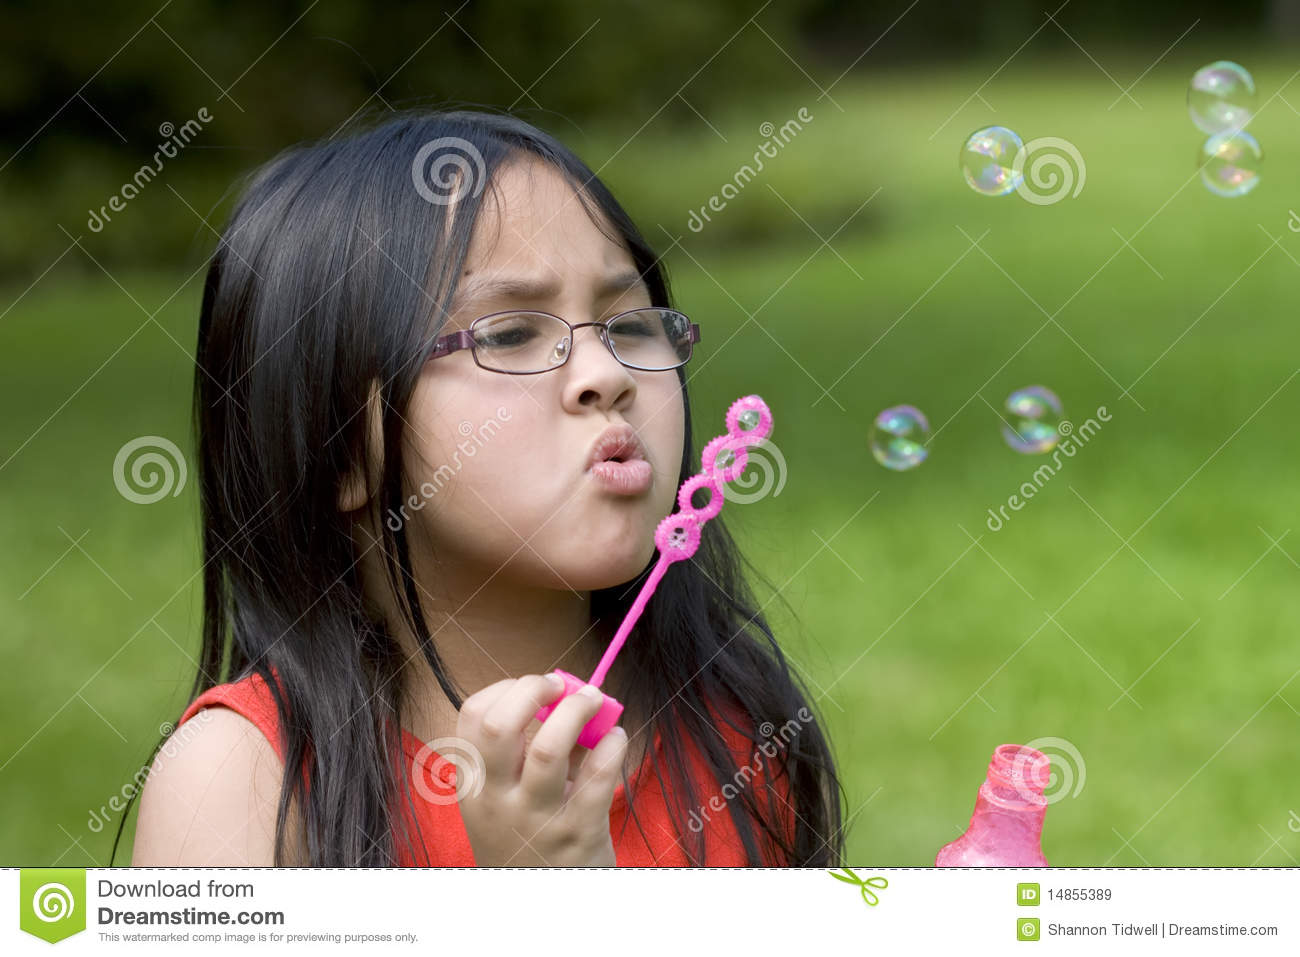 Girl blowing bubbles with wand